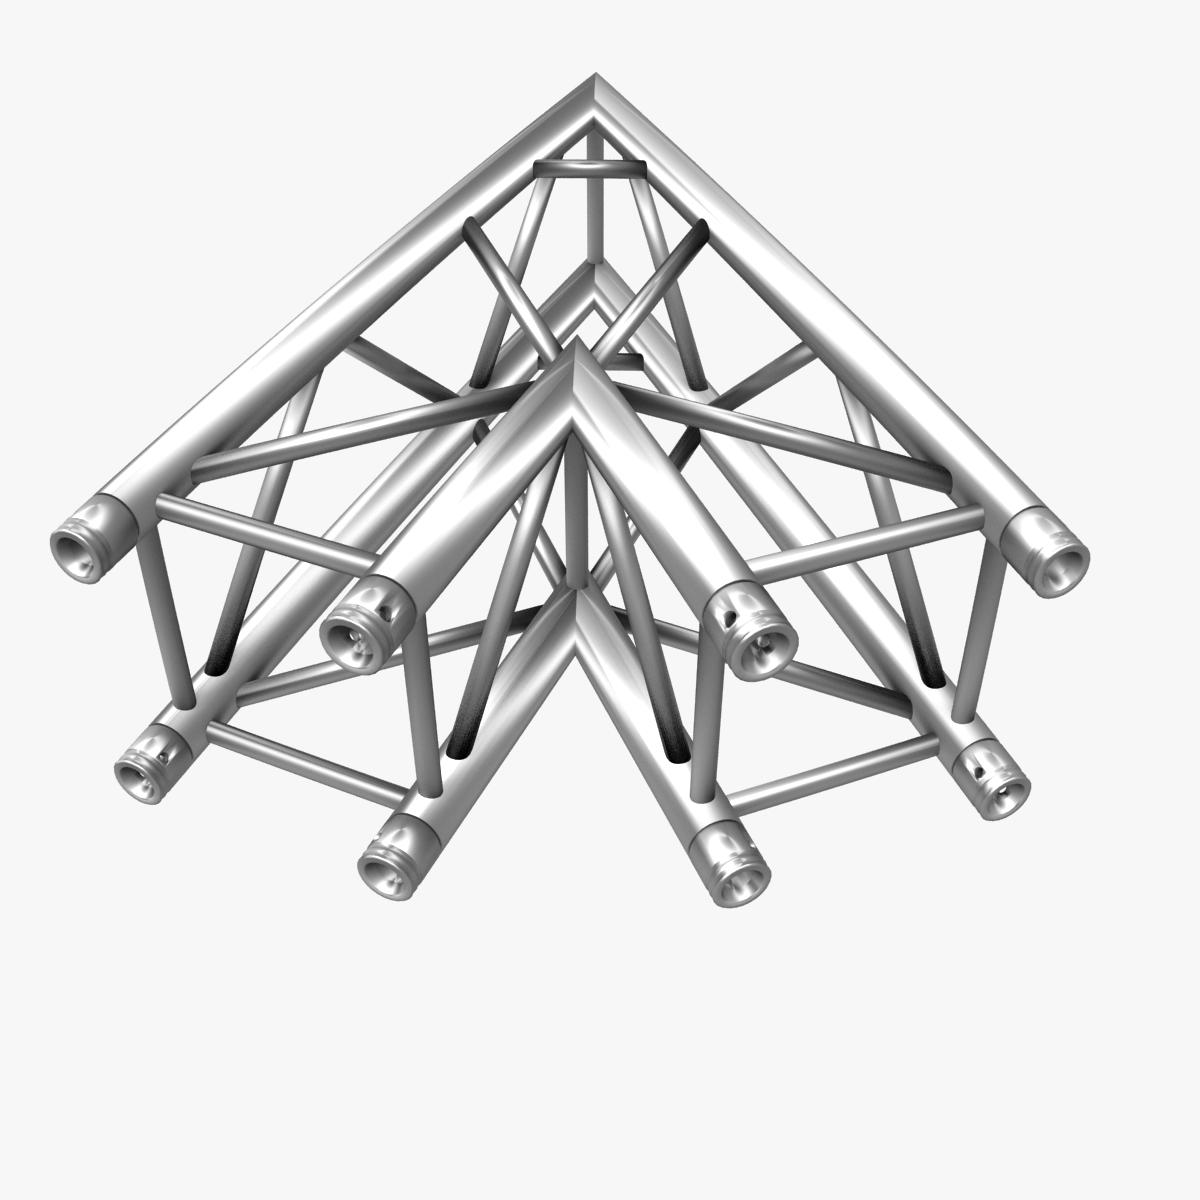 square truss standard (collection 24 modular) 3d model 3ds max dxf fbx c4d dae  texture obj 216354